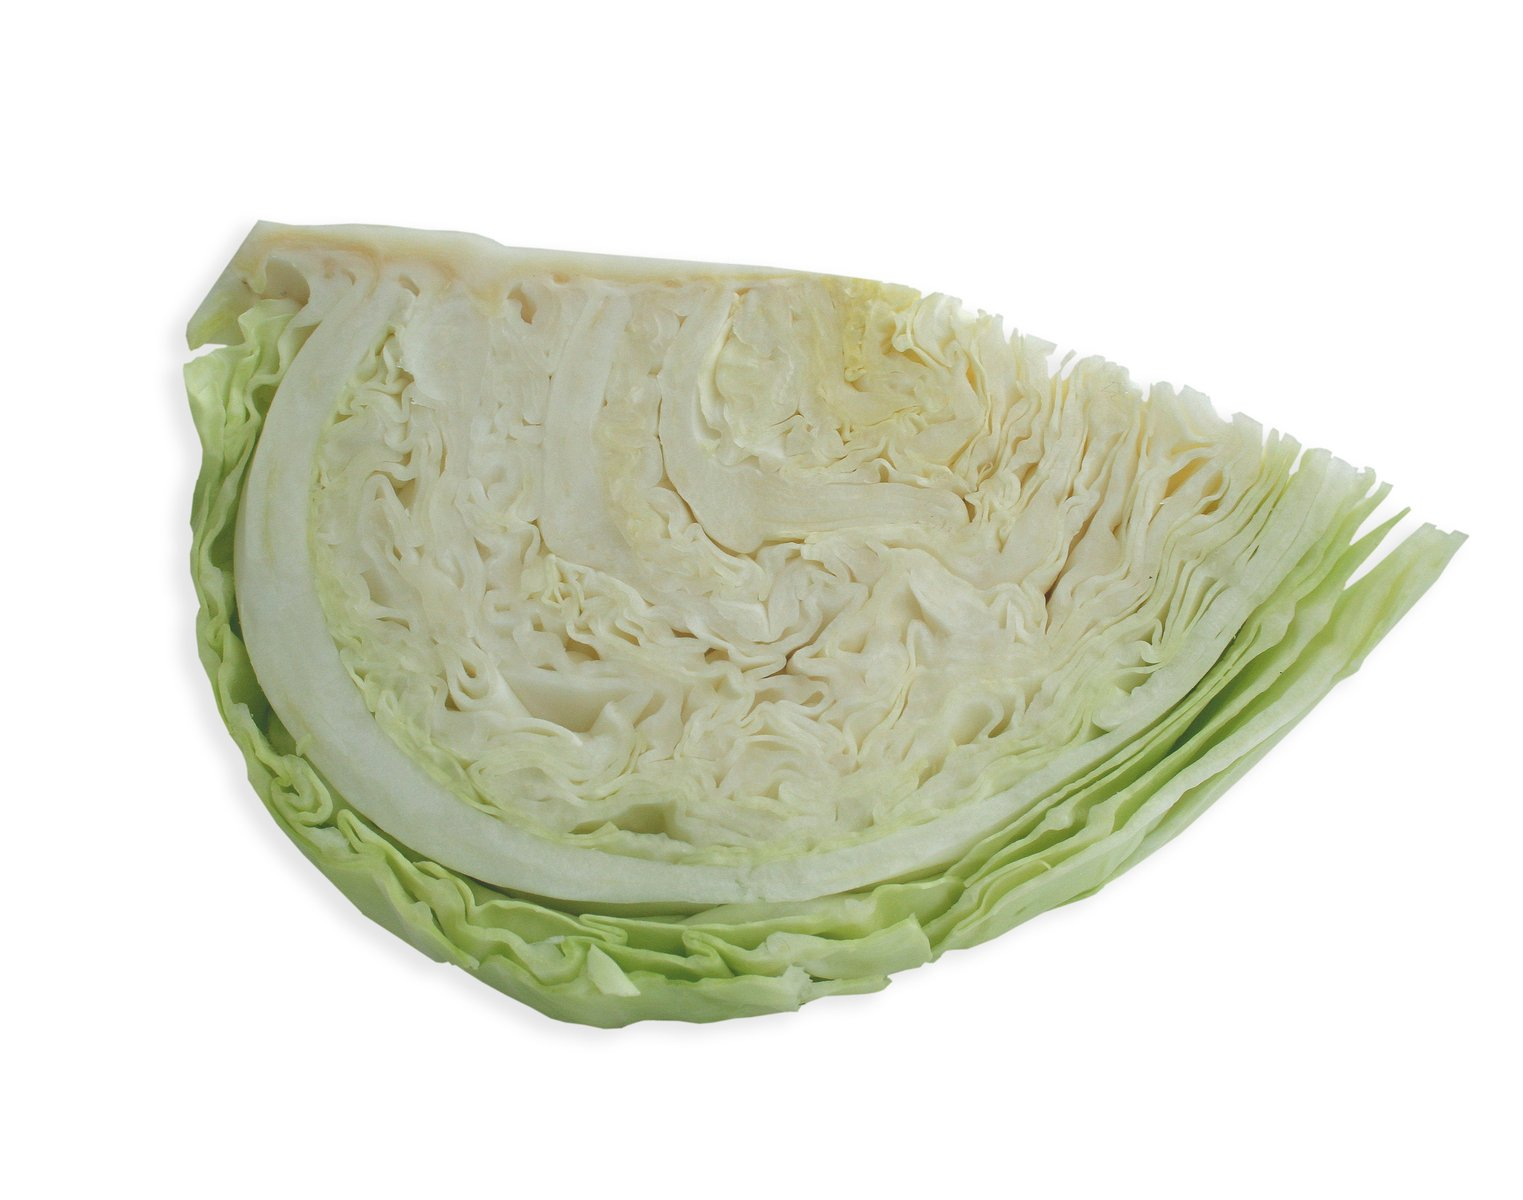 cabbage help with ulcer